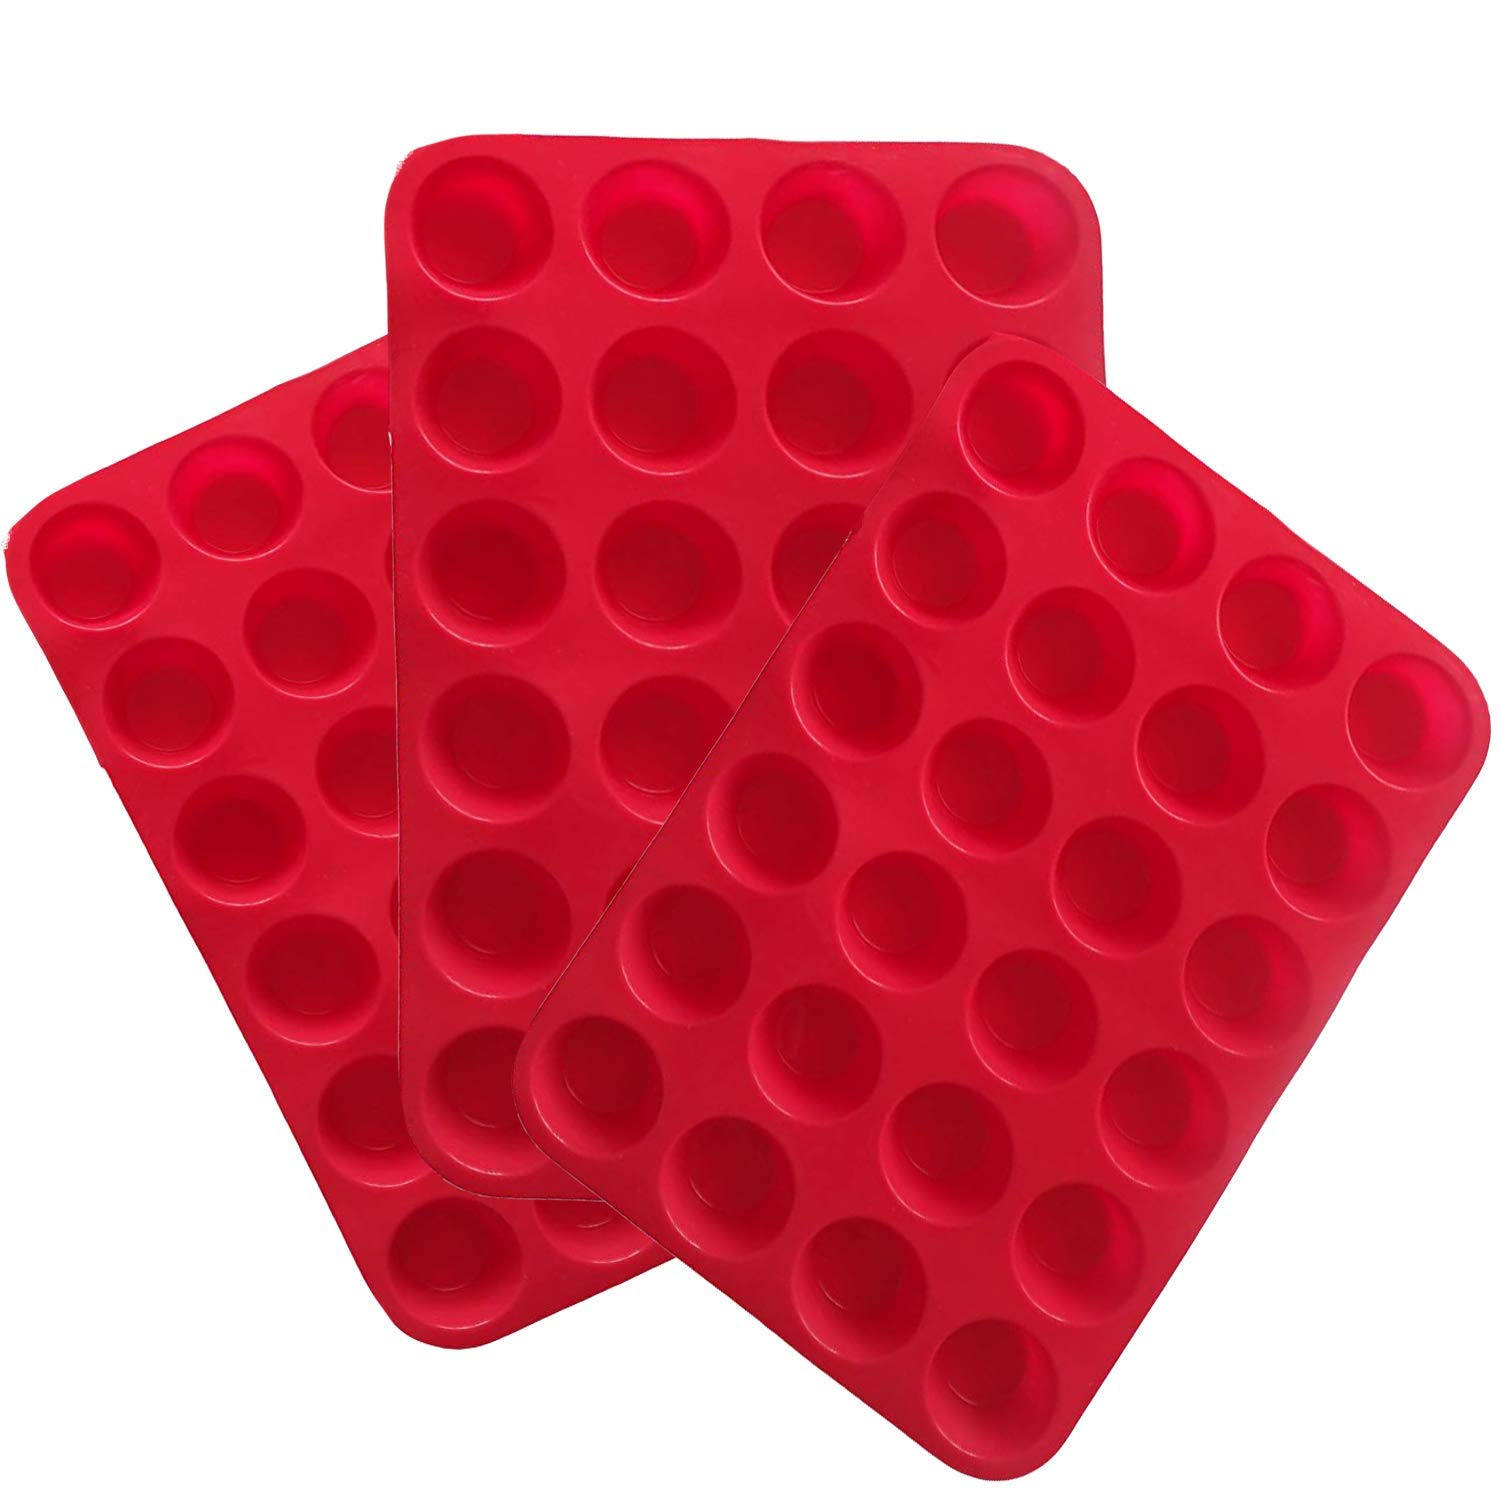 Silicone Mini Muffin Pan, 3 Pack 24 Cups Silicone Mold Cupcake Baking Pan, Silicone Muffin Tins Baking Molds (Red)